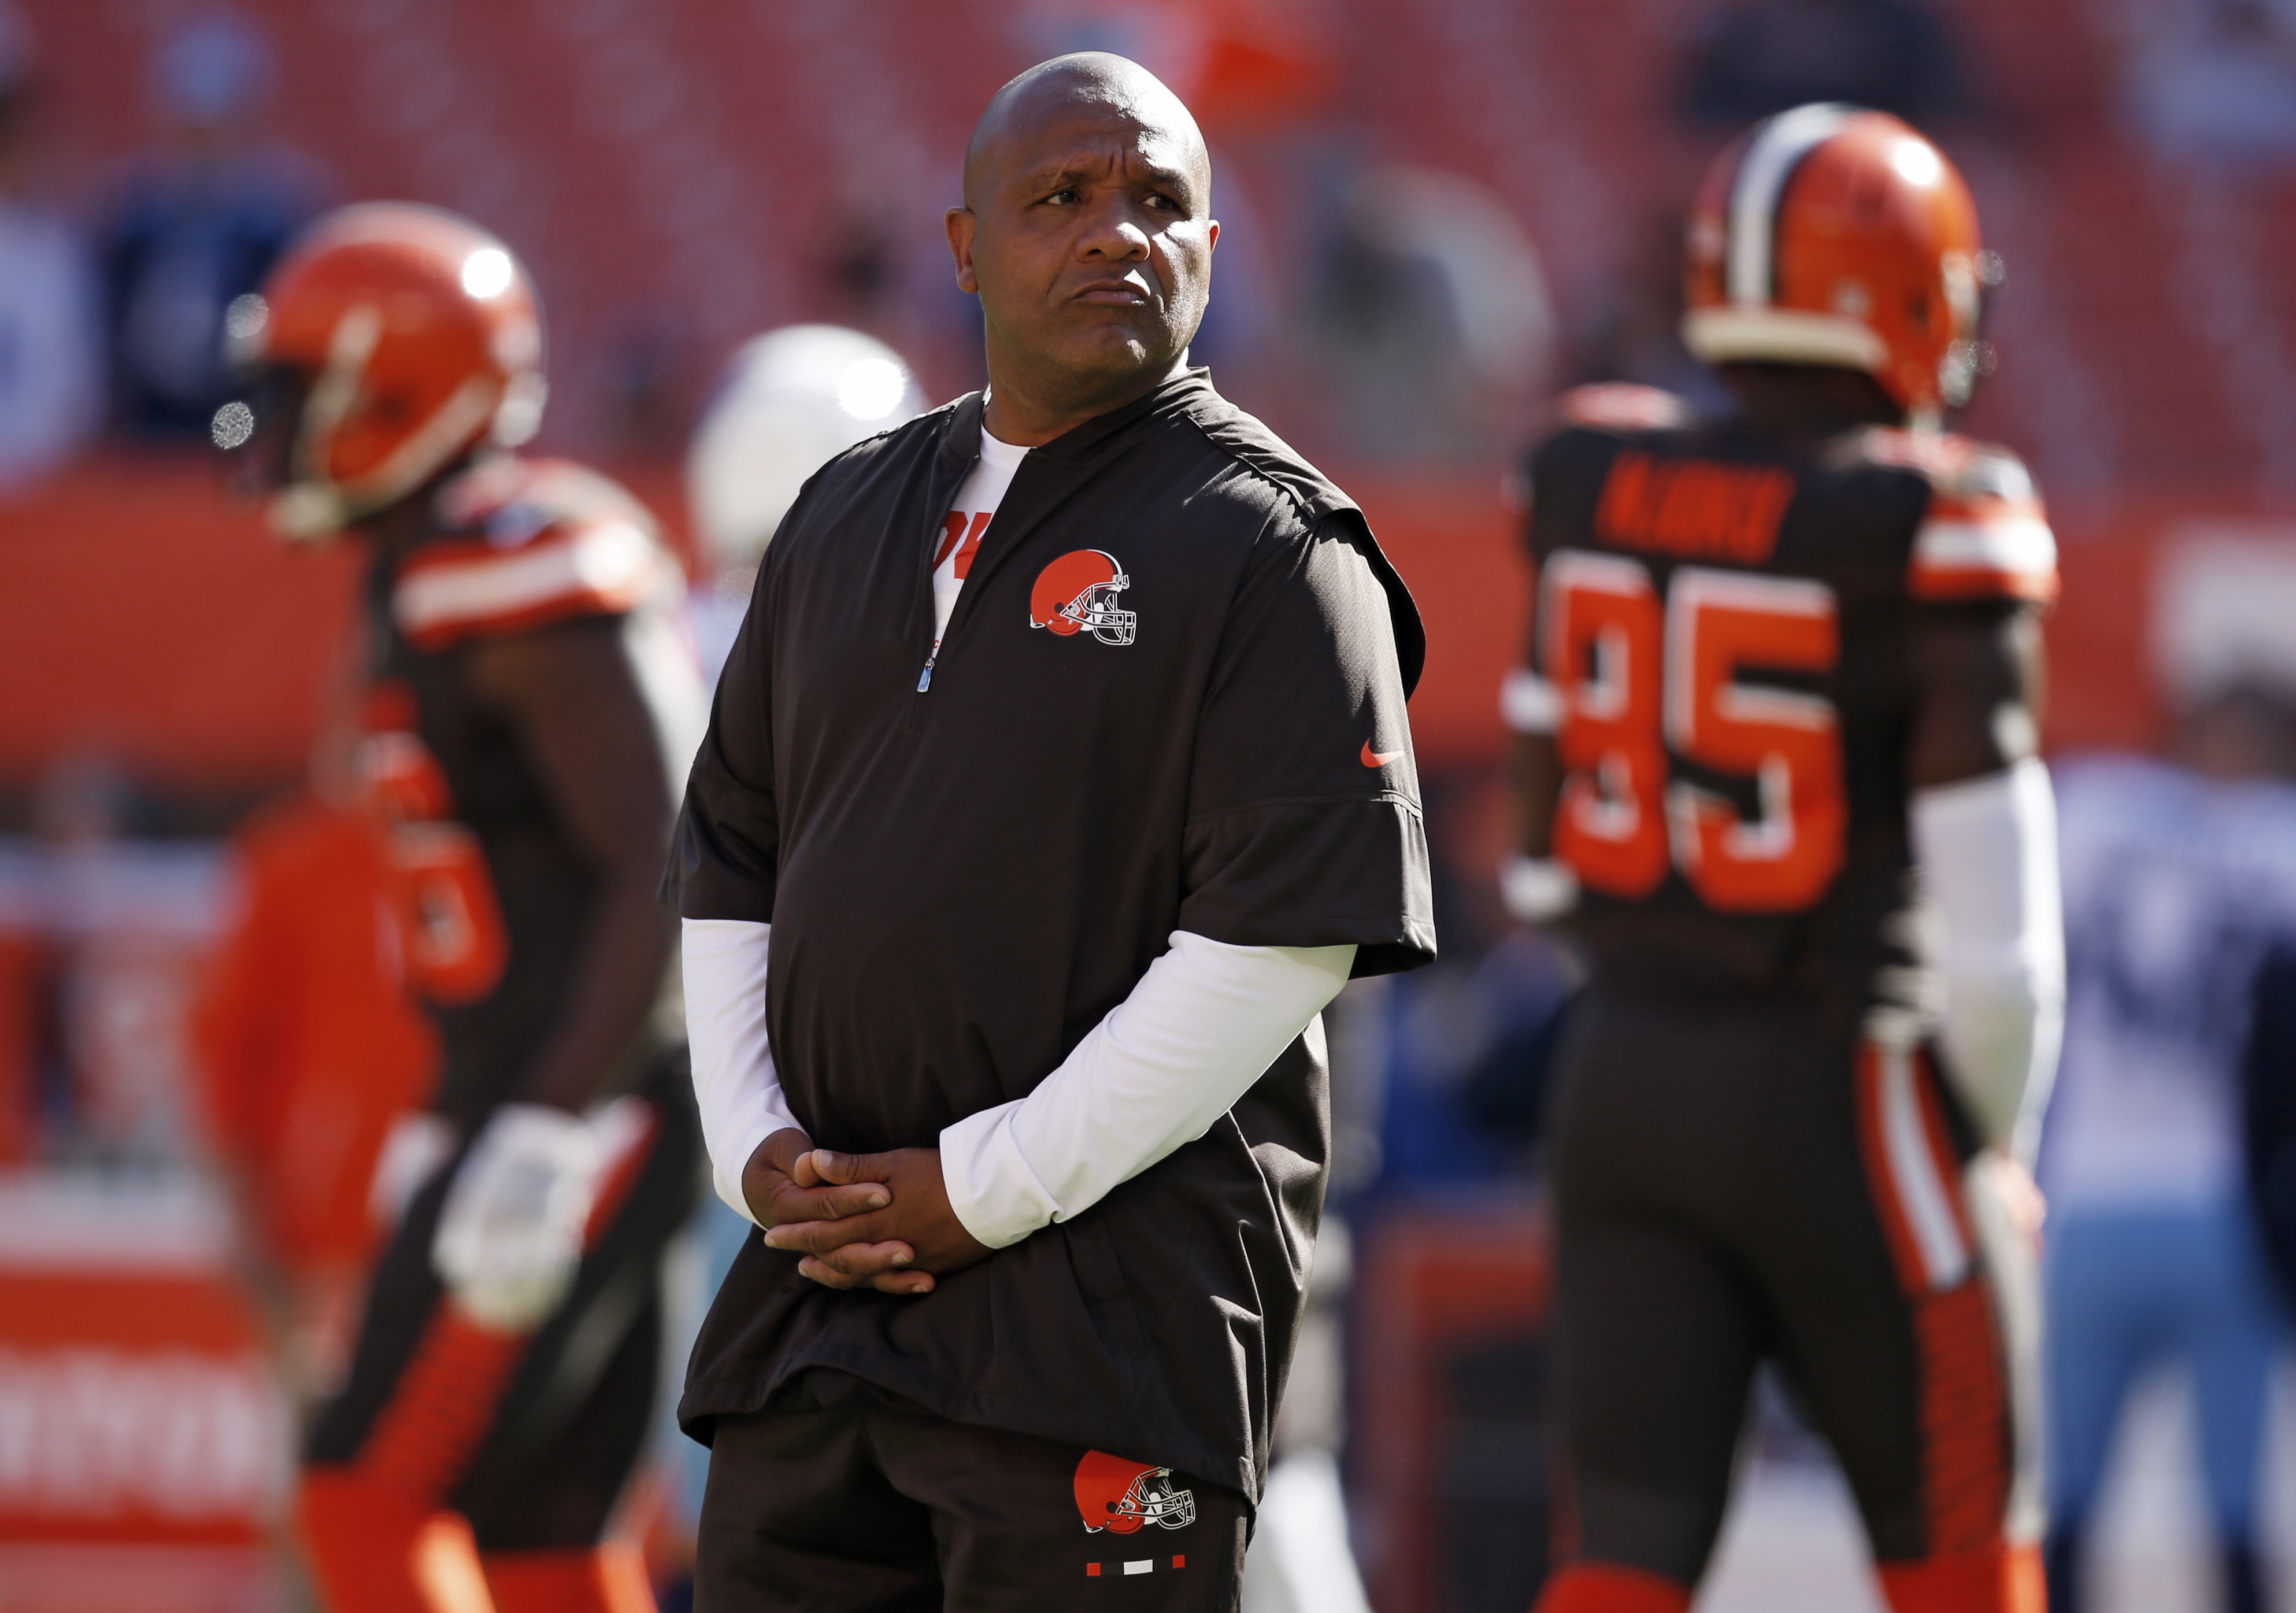 Browns head coach Hue Jacksons job supposedly is safe even though Cleveland has lost 27 of the last 28 games. Ron Schwane / AP).